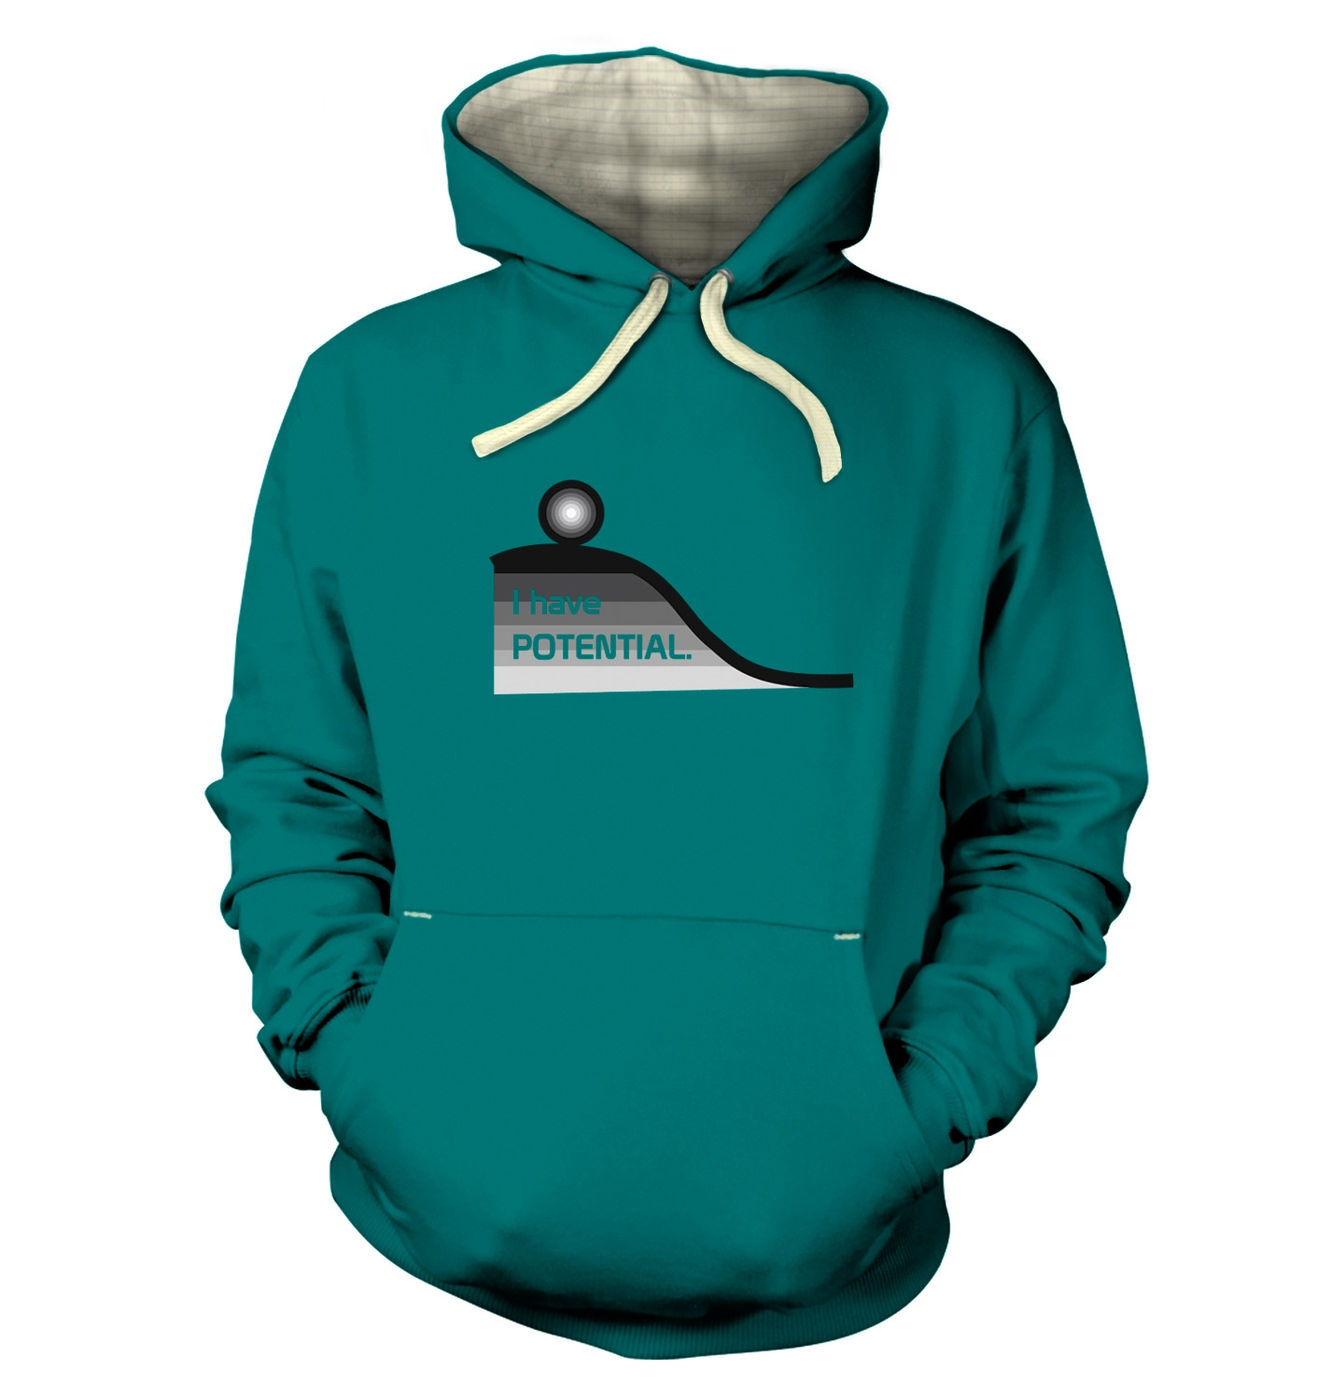 I Have Potential geeky science slogan premium hoodies